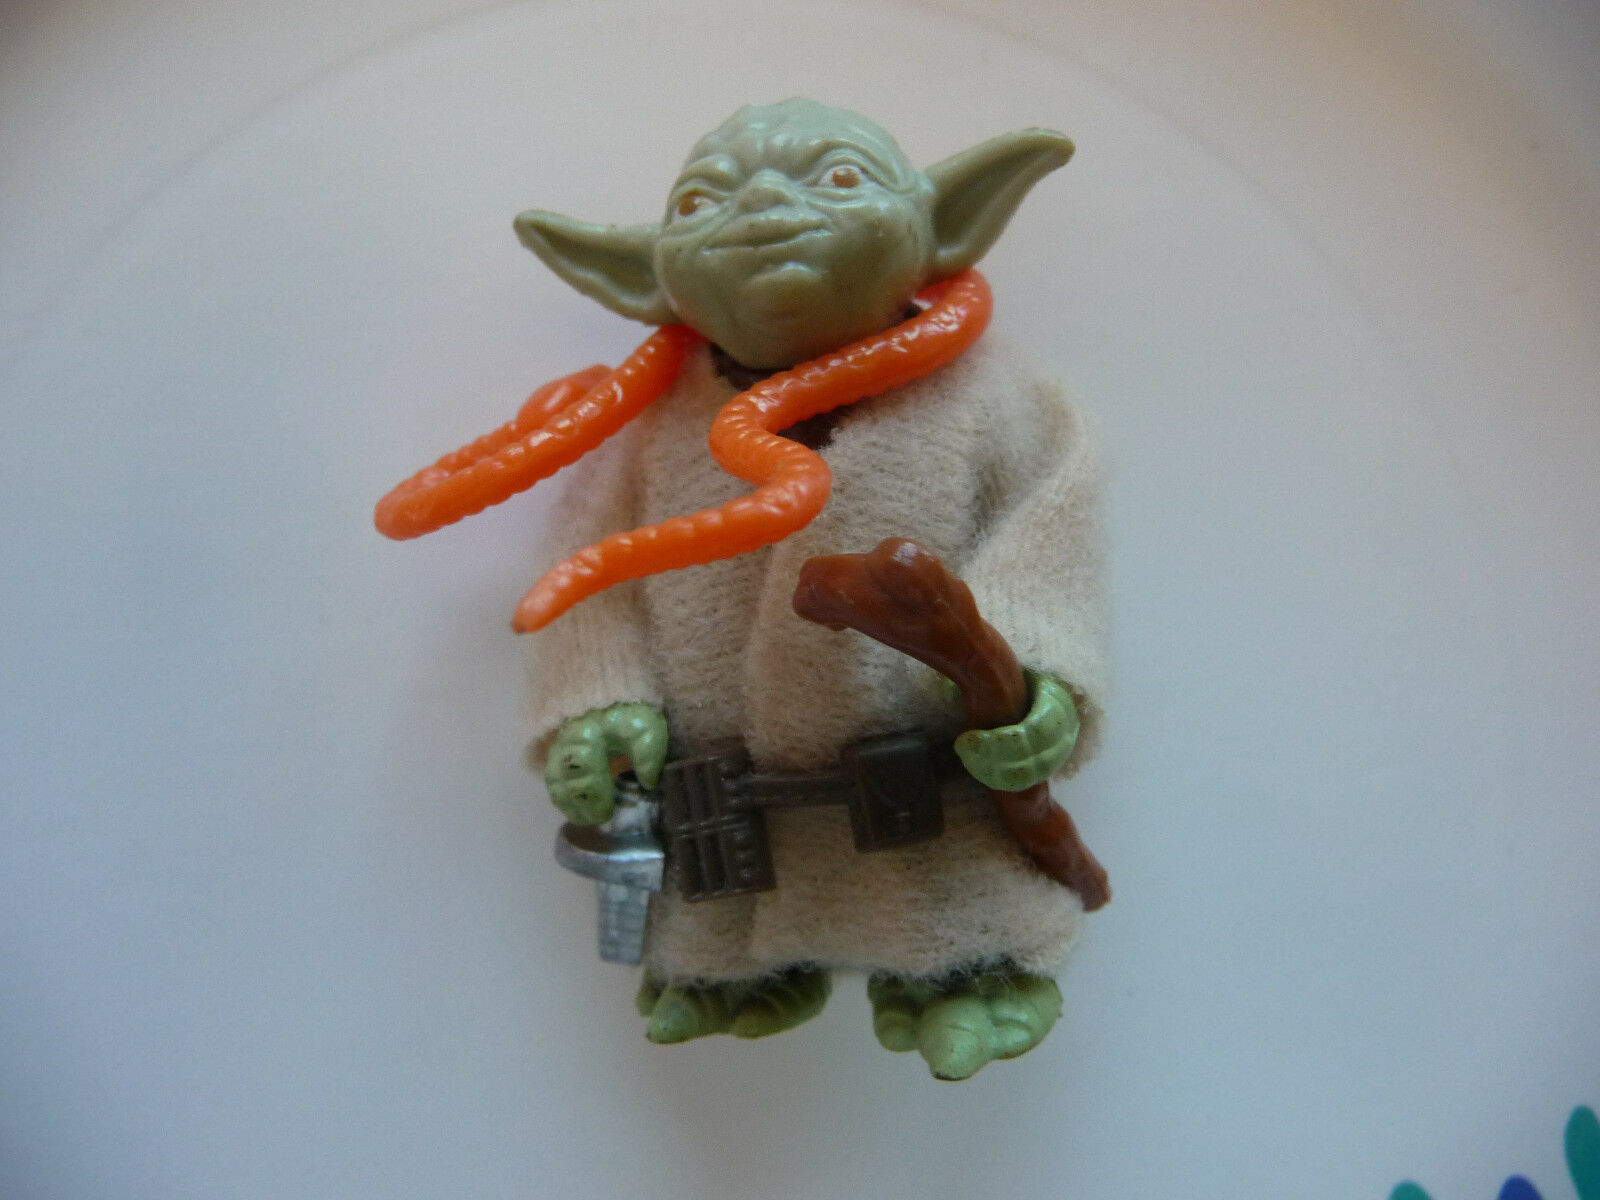 Vintage Star Wars ESB 1980 YODA with with YODA CLOAK, BELT, SNAKE, & CANE, EXCELLENT 842673